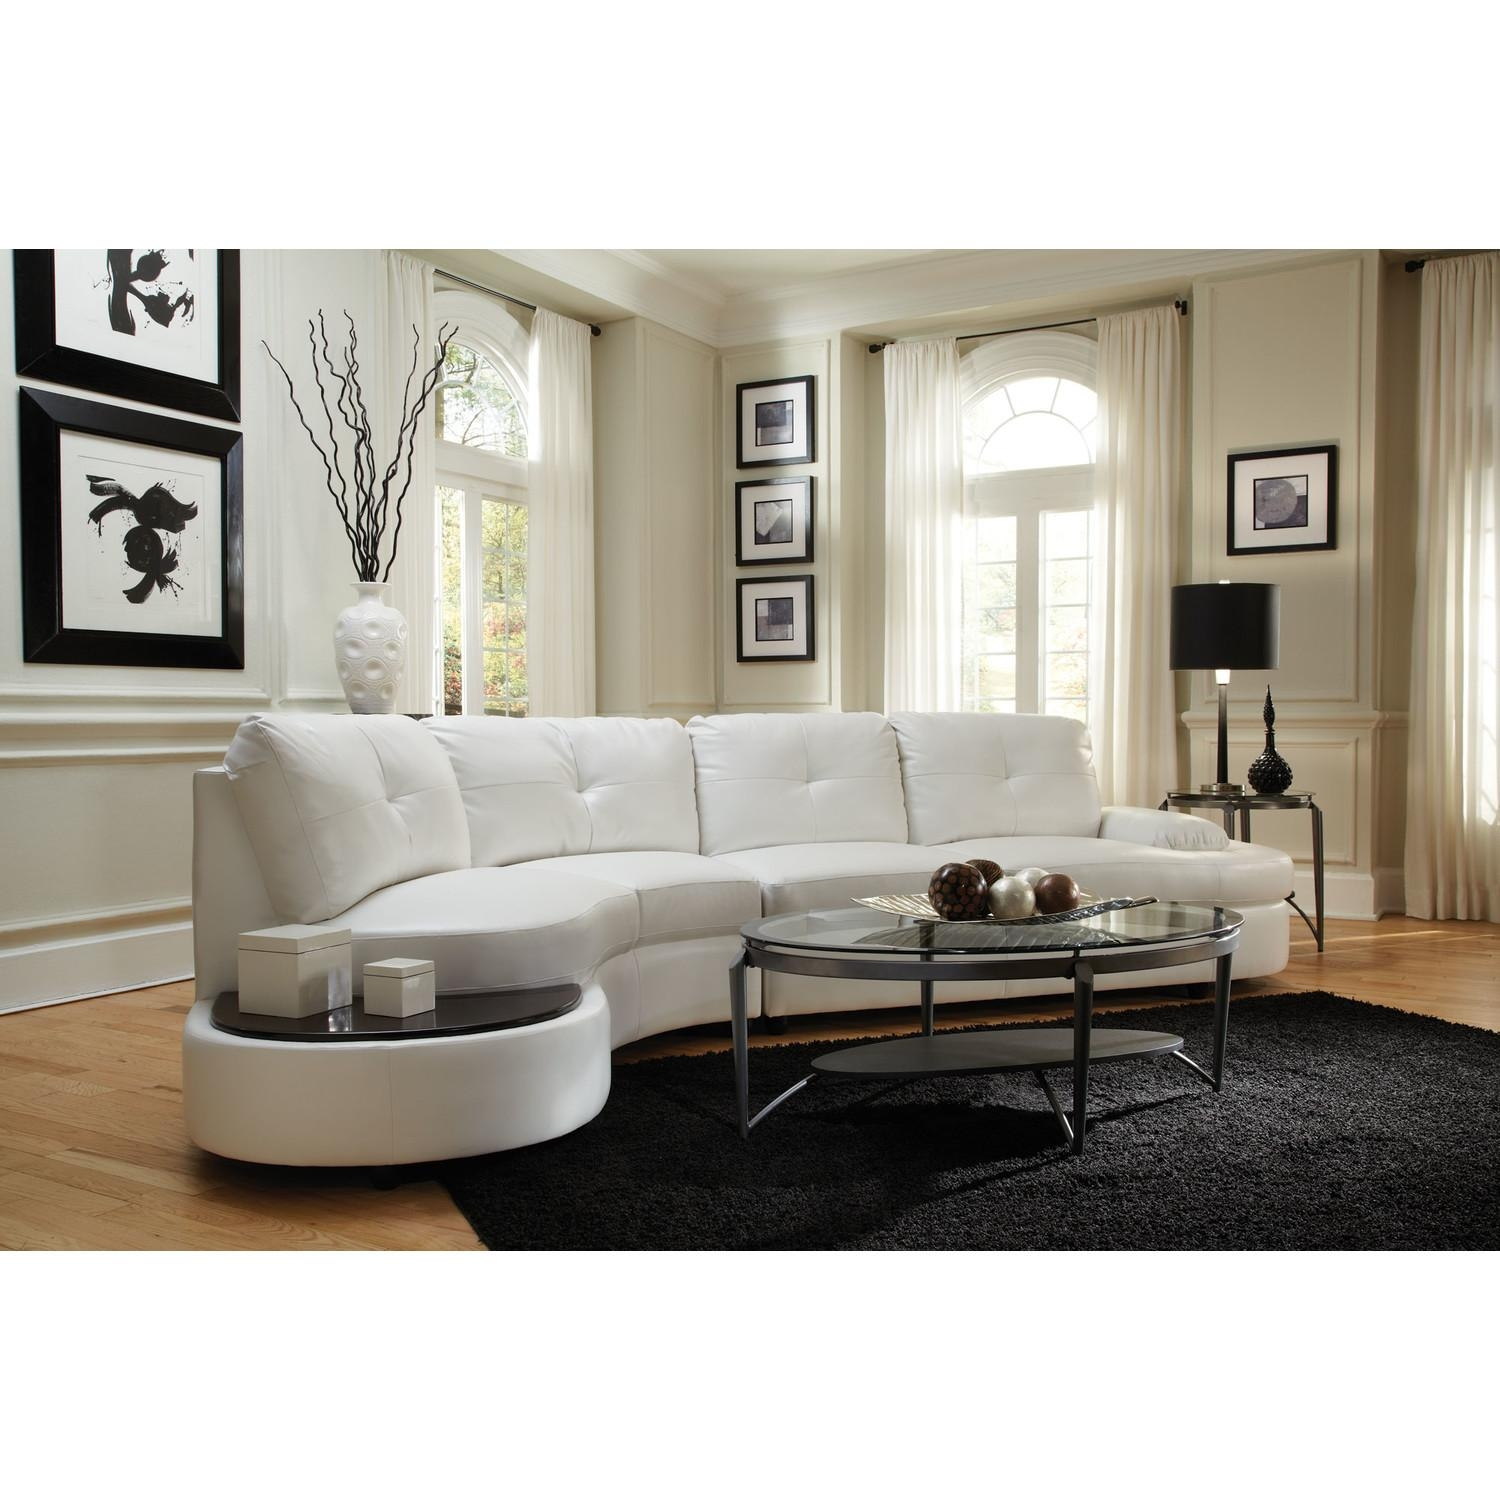 Interior: Admirable Oversized Sectional Sofas With Oversized Intended For Window Sofas (Image 9 of 20)